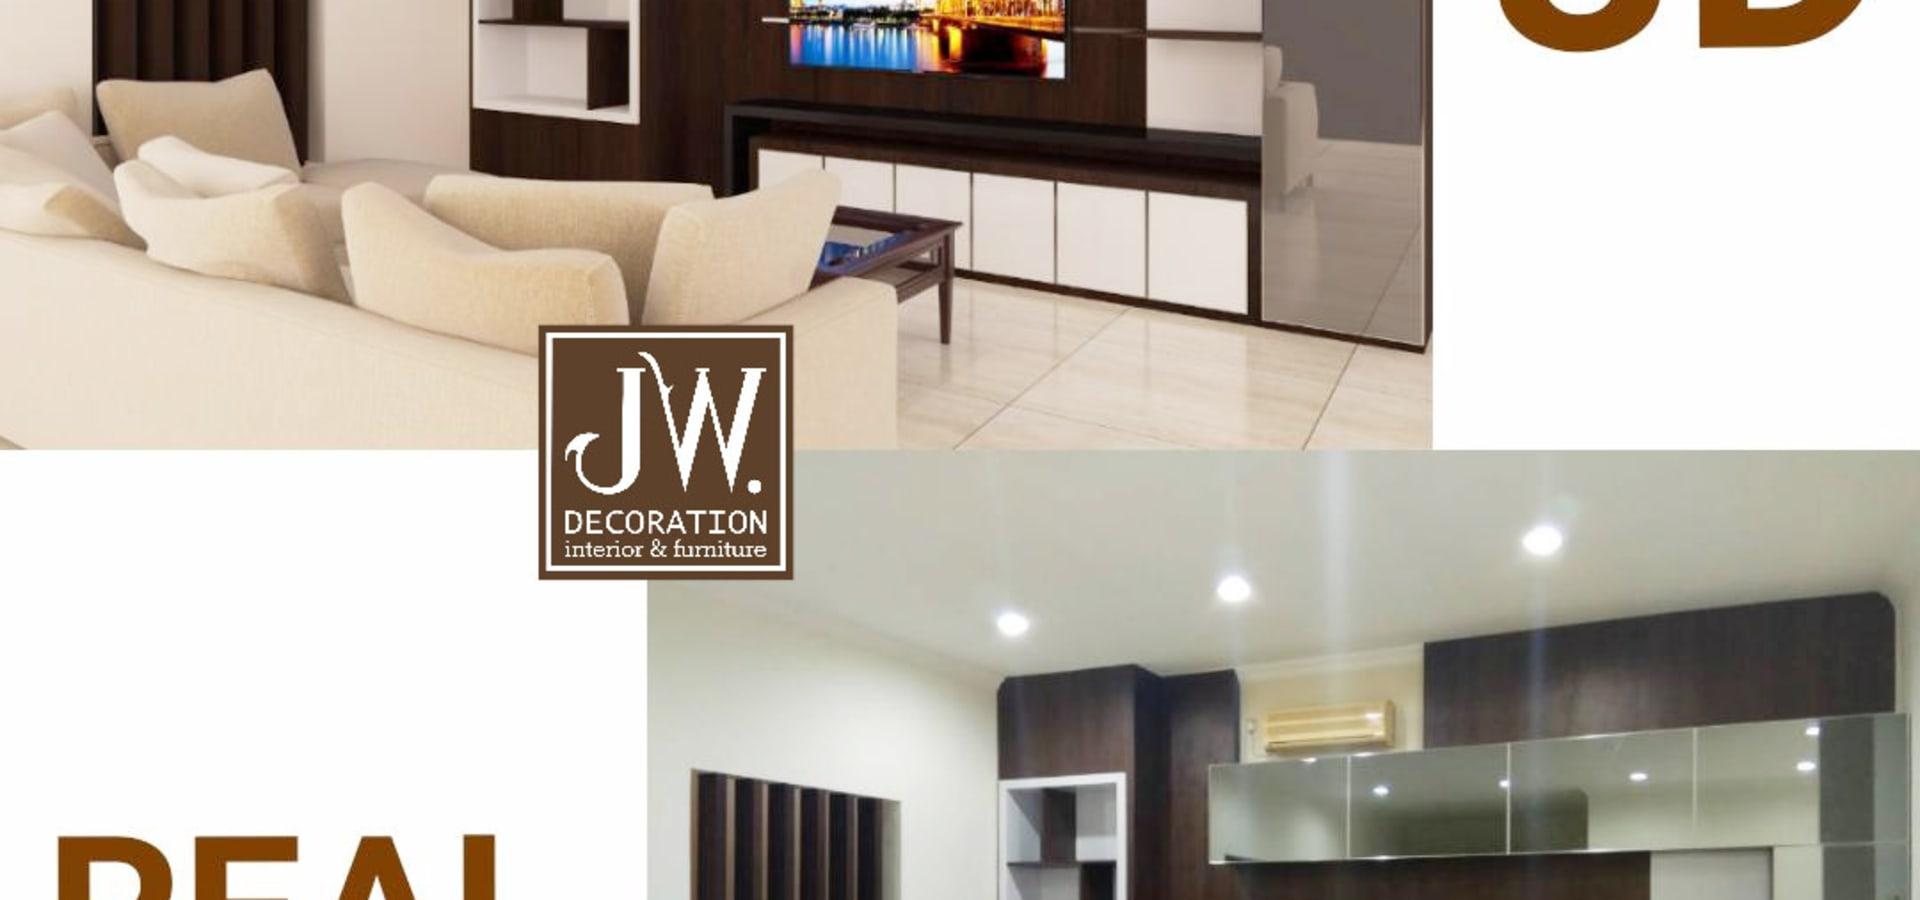 JW Decoration